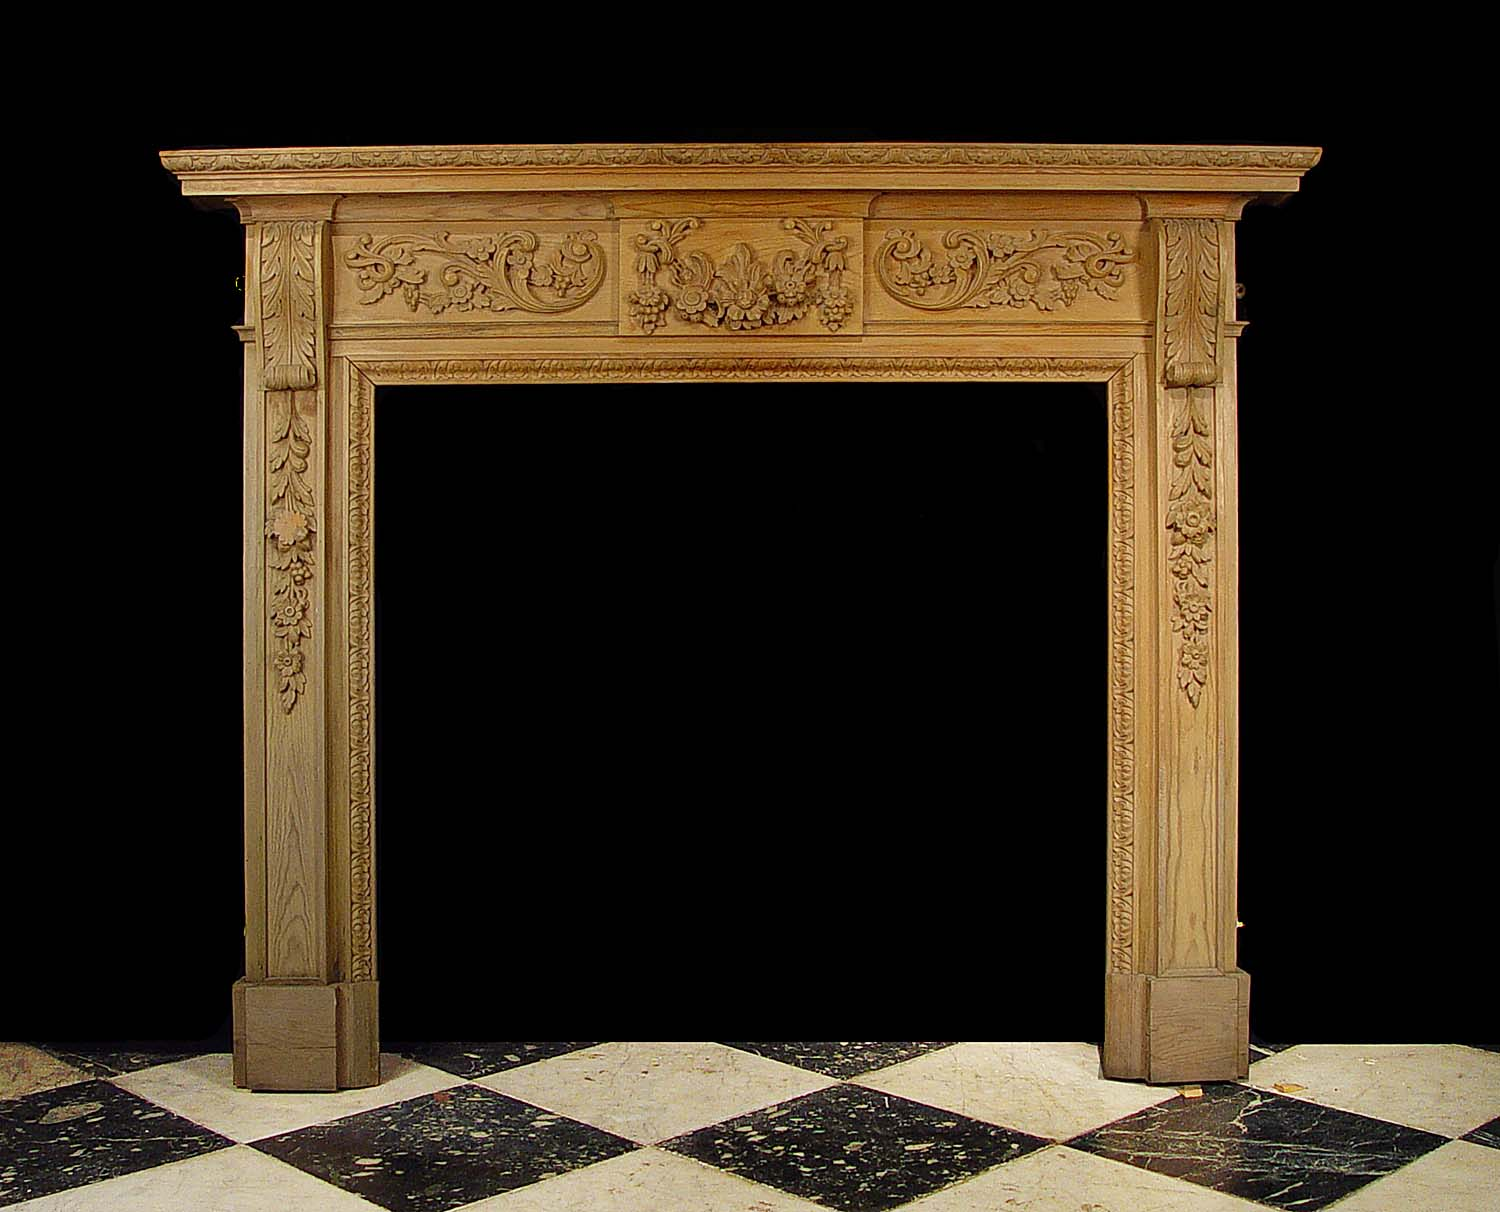 antique georgian carved pine wood fireplace mantel